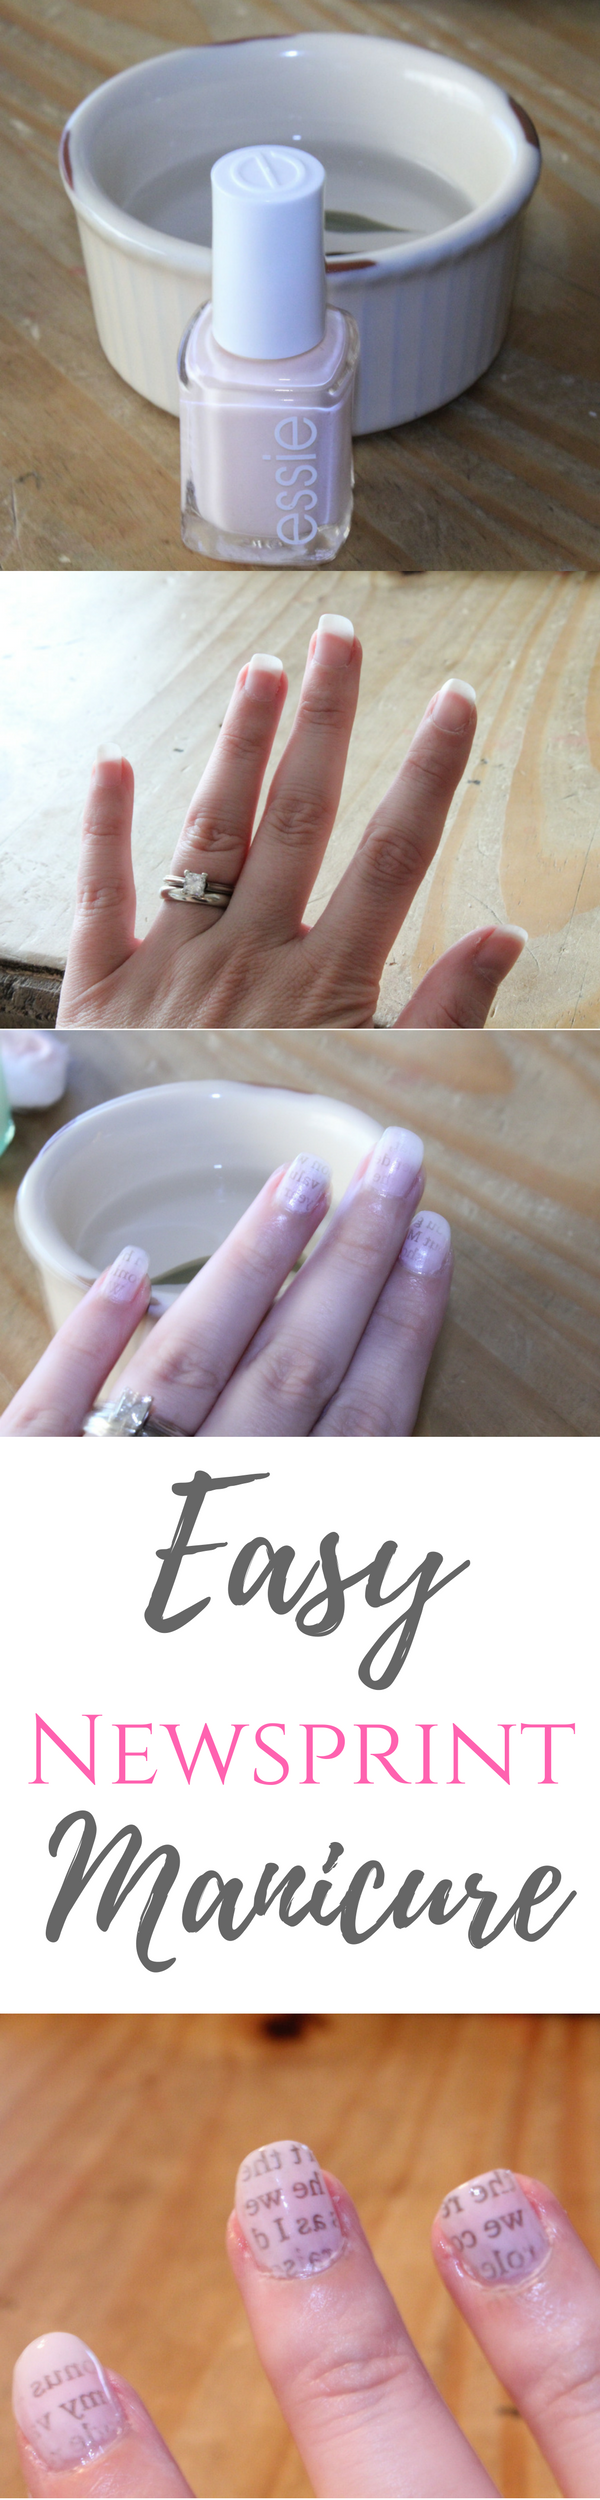 Skip the trip to the nail salon and do this easy newsprint manicure at home.